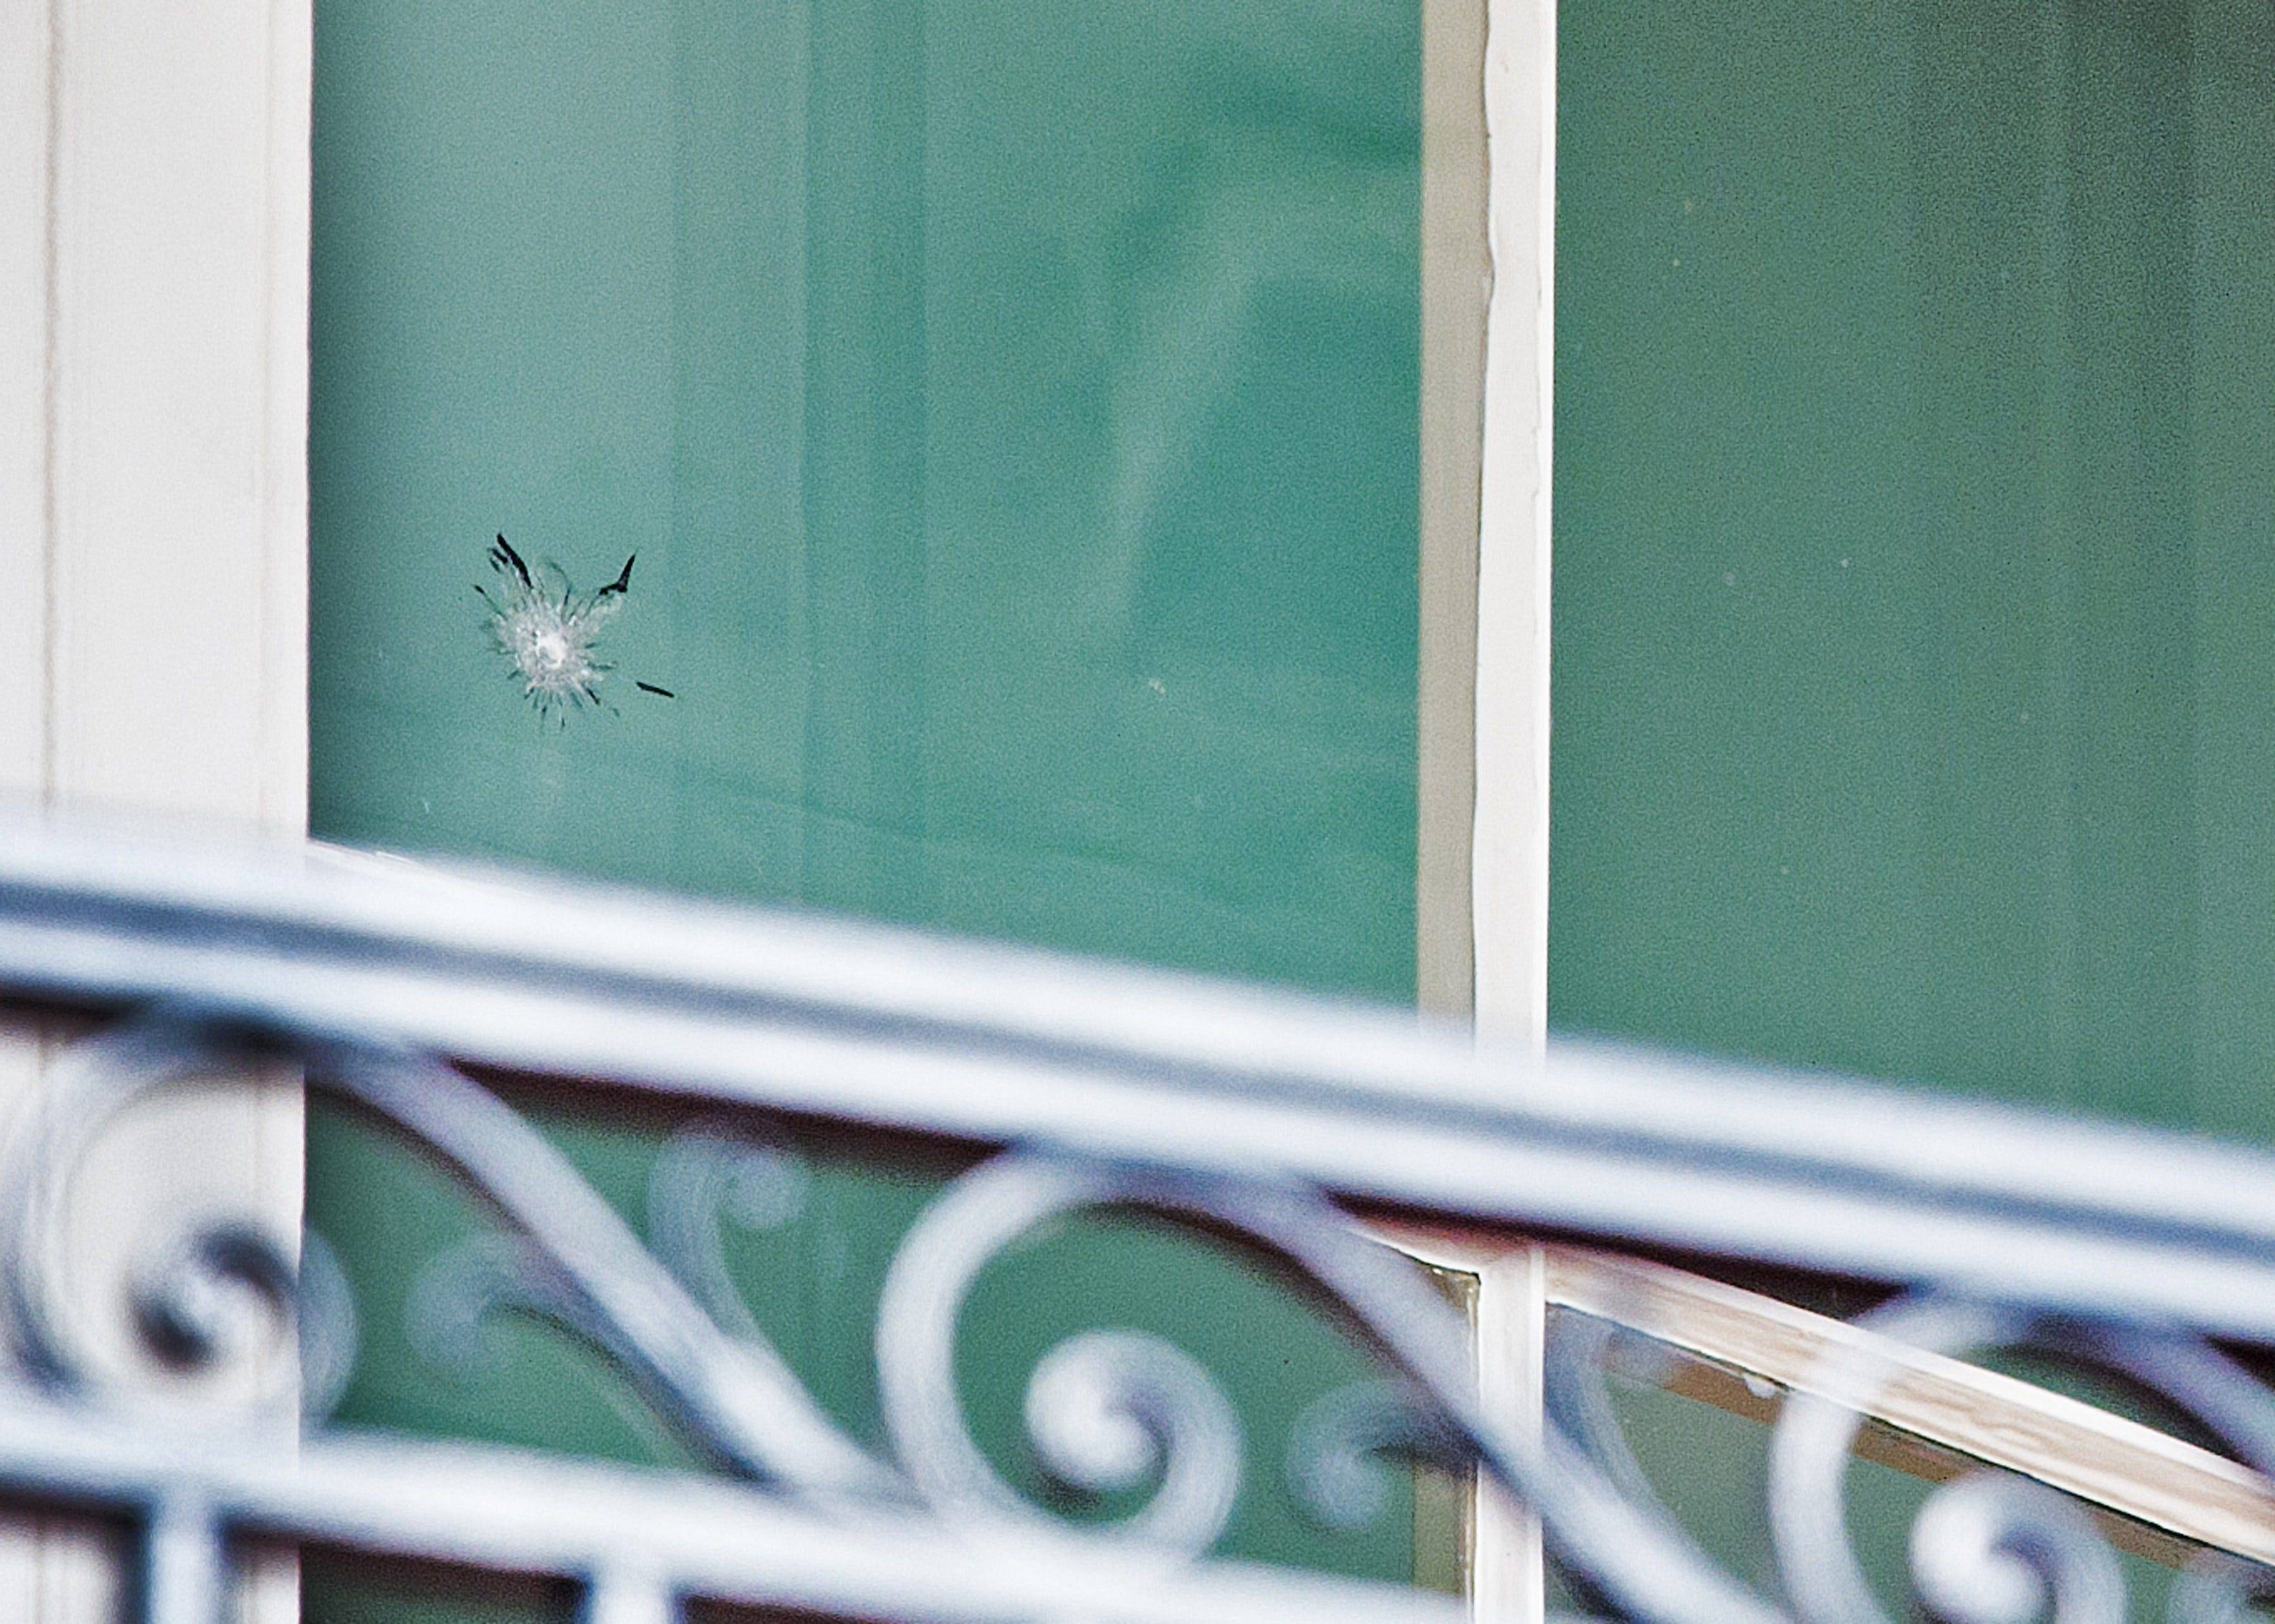 A Bullet Hole Is Seen In The Window On The Residential Level On The South  Side Of The White House On November 11, 2011. (Photo: PAUL J. RICHARDS ,  AFP/Getty ...